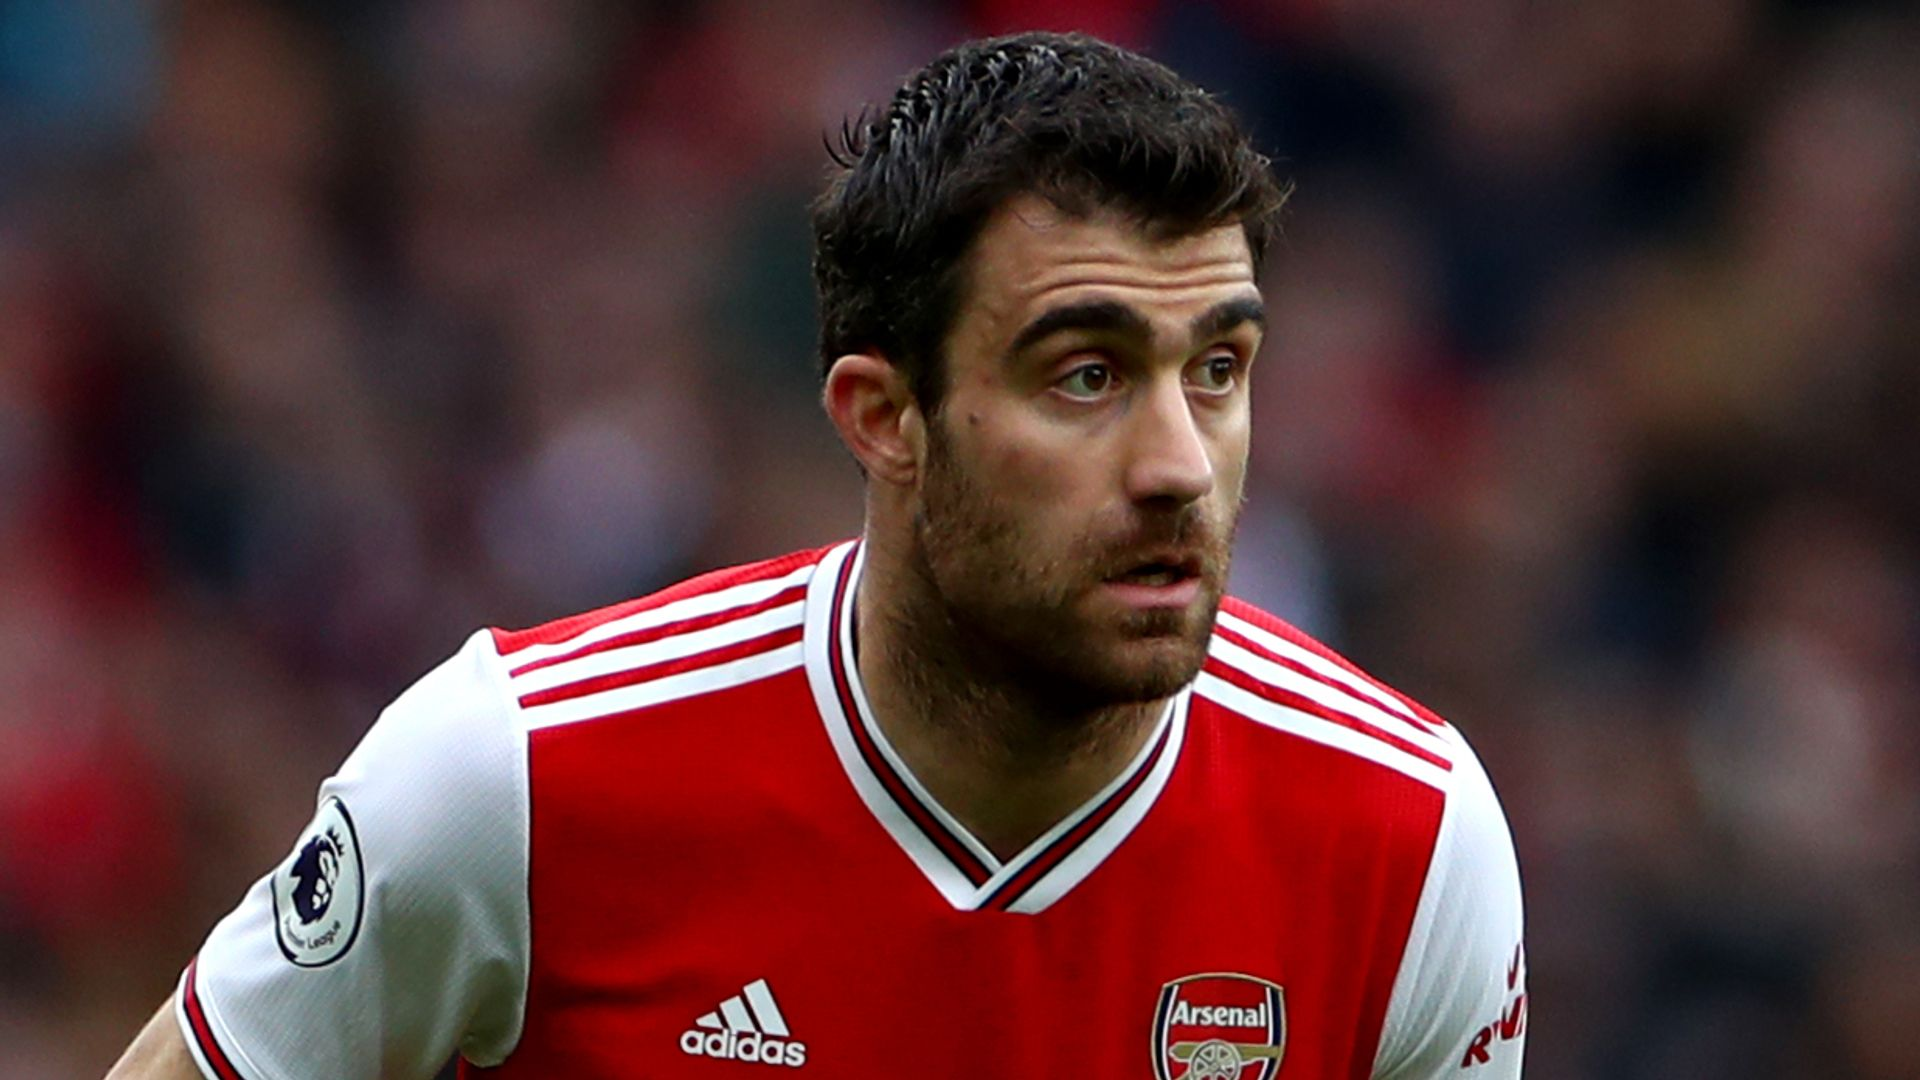 Arsenal and Sokratis agree to contract termination